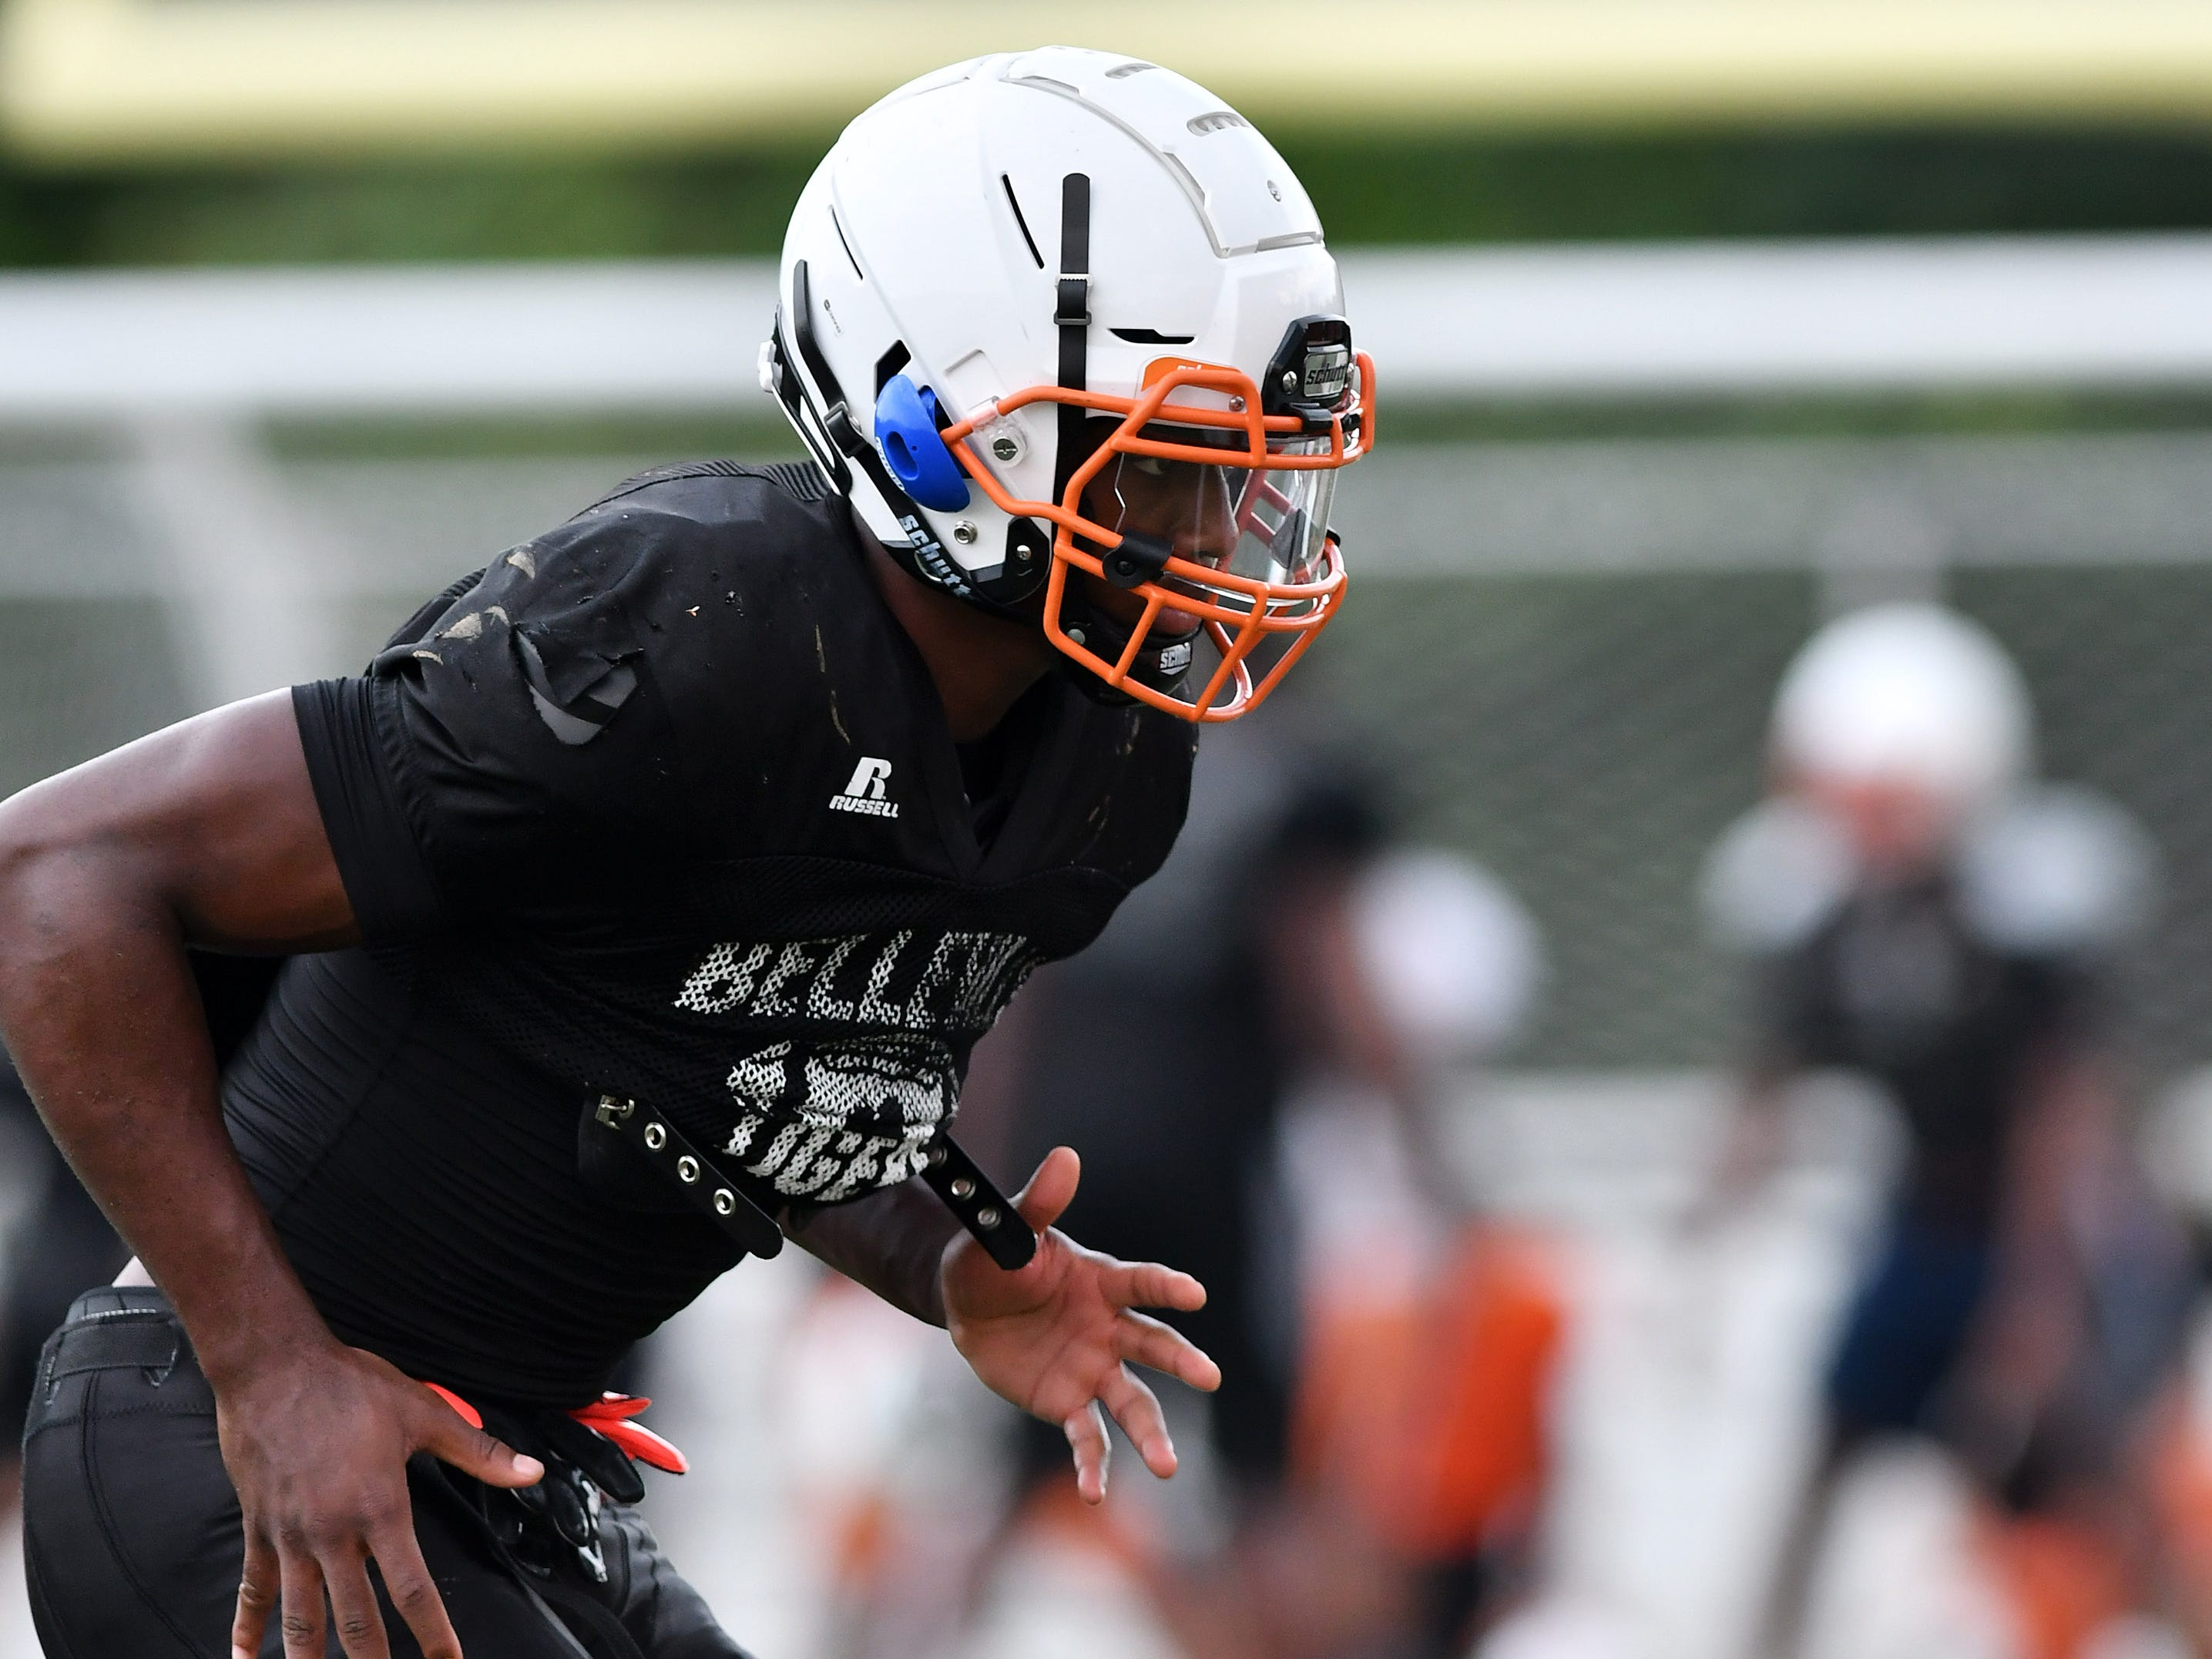 """3. Julian Barnett, Belleville (Michigan State) — WR/CB/6-2/189: Barnett showed his ability to be a playmaker on both sides of the ball, grabbing 22 passes for 400 yards and seven touchdowns while making 37 tackles and intercepting three passes on the defensive side of the ball to help Belleville earn its first regional championship in program history. He earned a spot on The News Dream Team and will be playing in the Under Armour All-American Game on Jan. 3 in Orlando. """"Julian Barnett on any other team would be a serious candidate for Mr. Football and this speaks to Julian's maturity,"""" coach Jermain Crowell said. """"Instead of worrying about his numbers, he's grown to be strictly concerned with his team's success."""""""